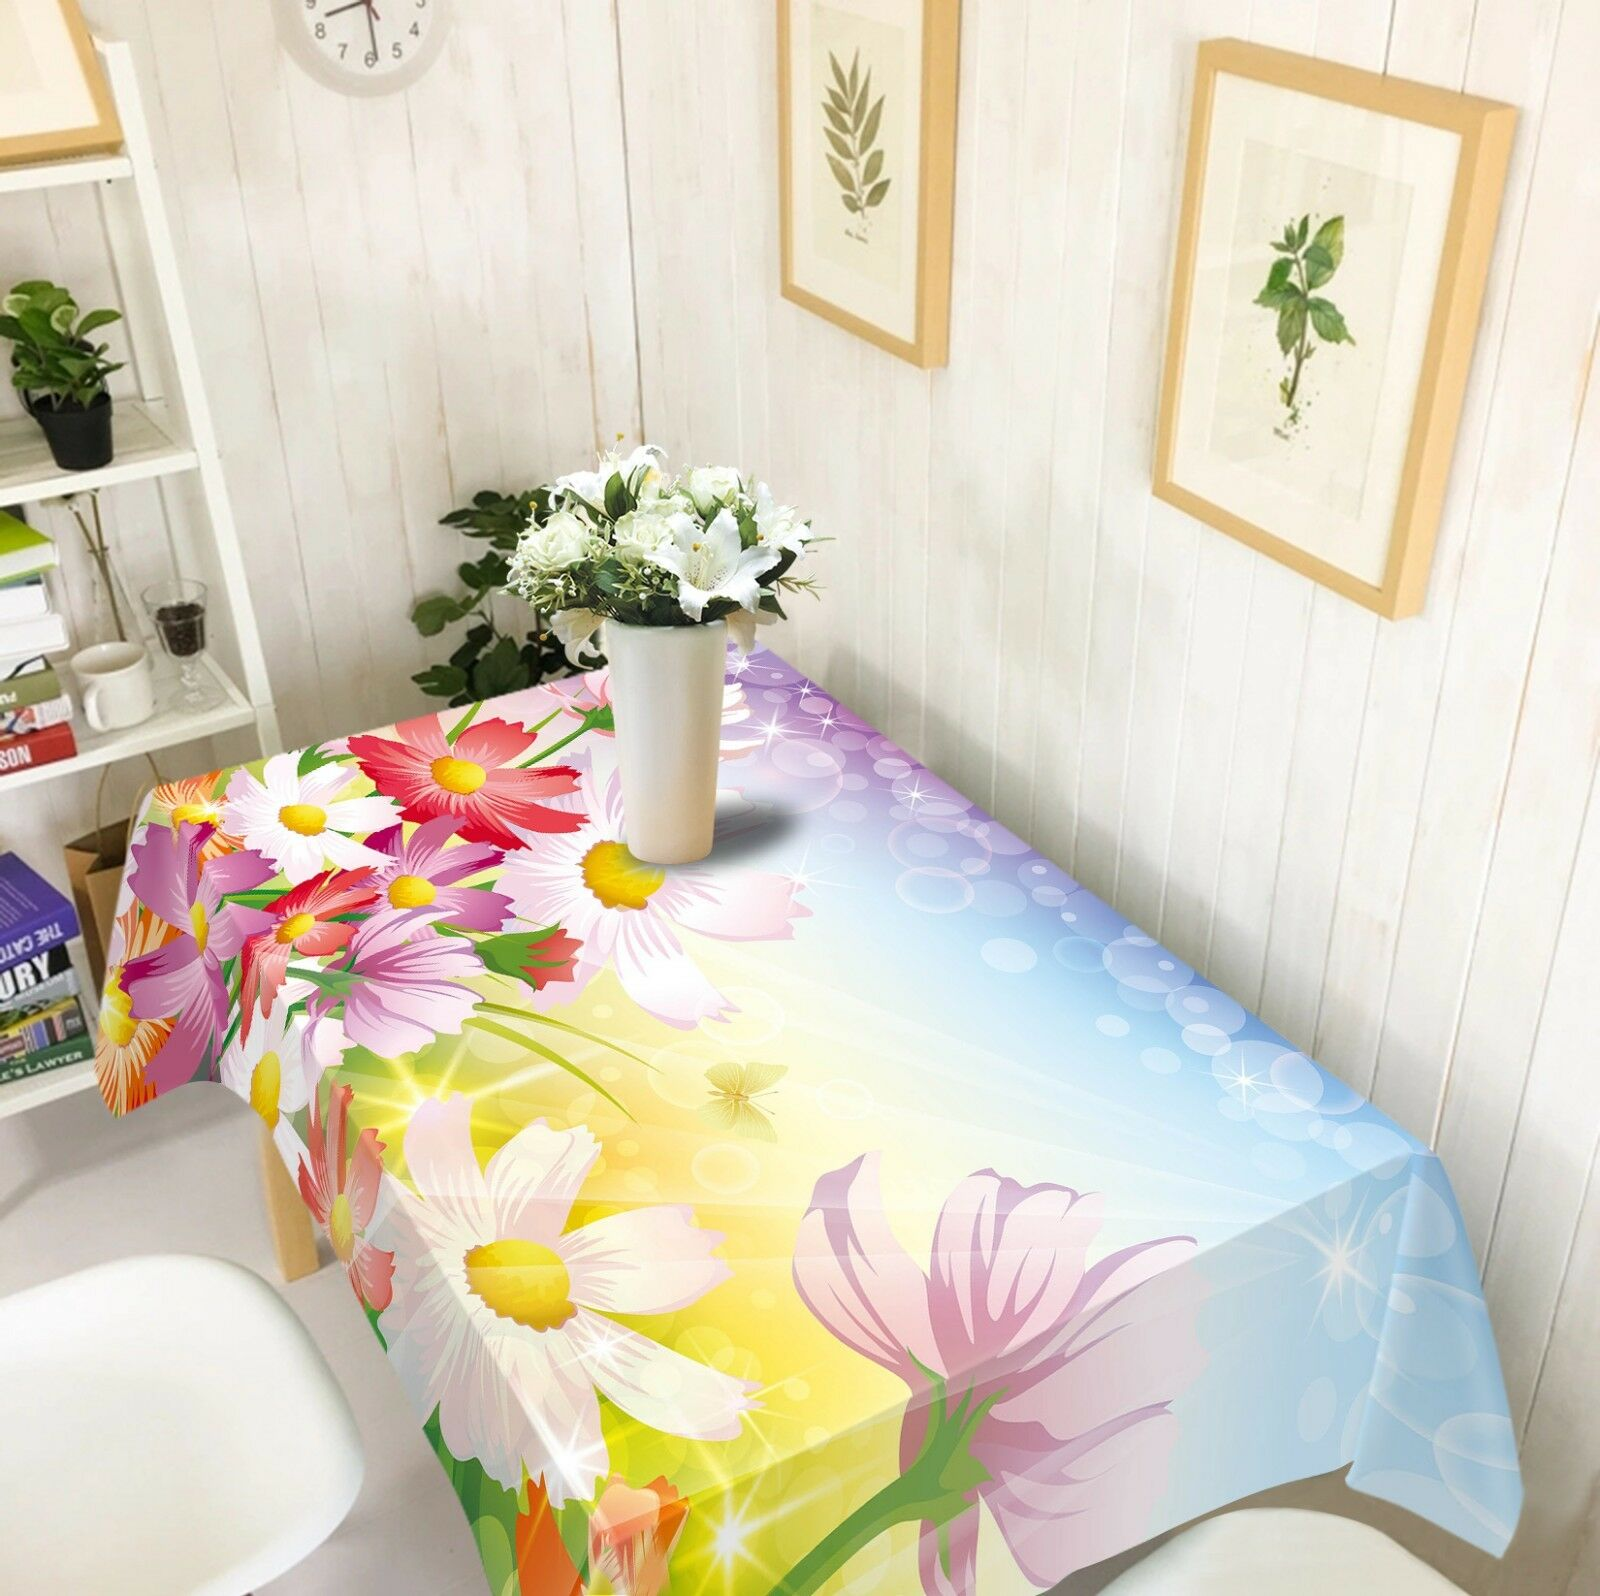 3D Couleur Flower 3 Tablecloth Table Cover Cloth Birthday Party Event AJ WALLPAPER